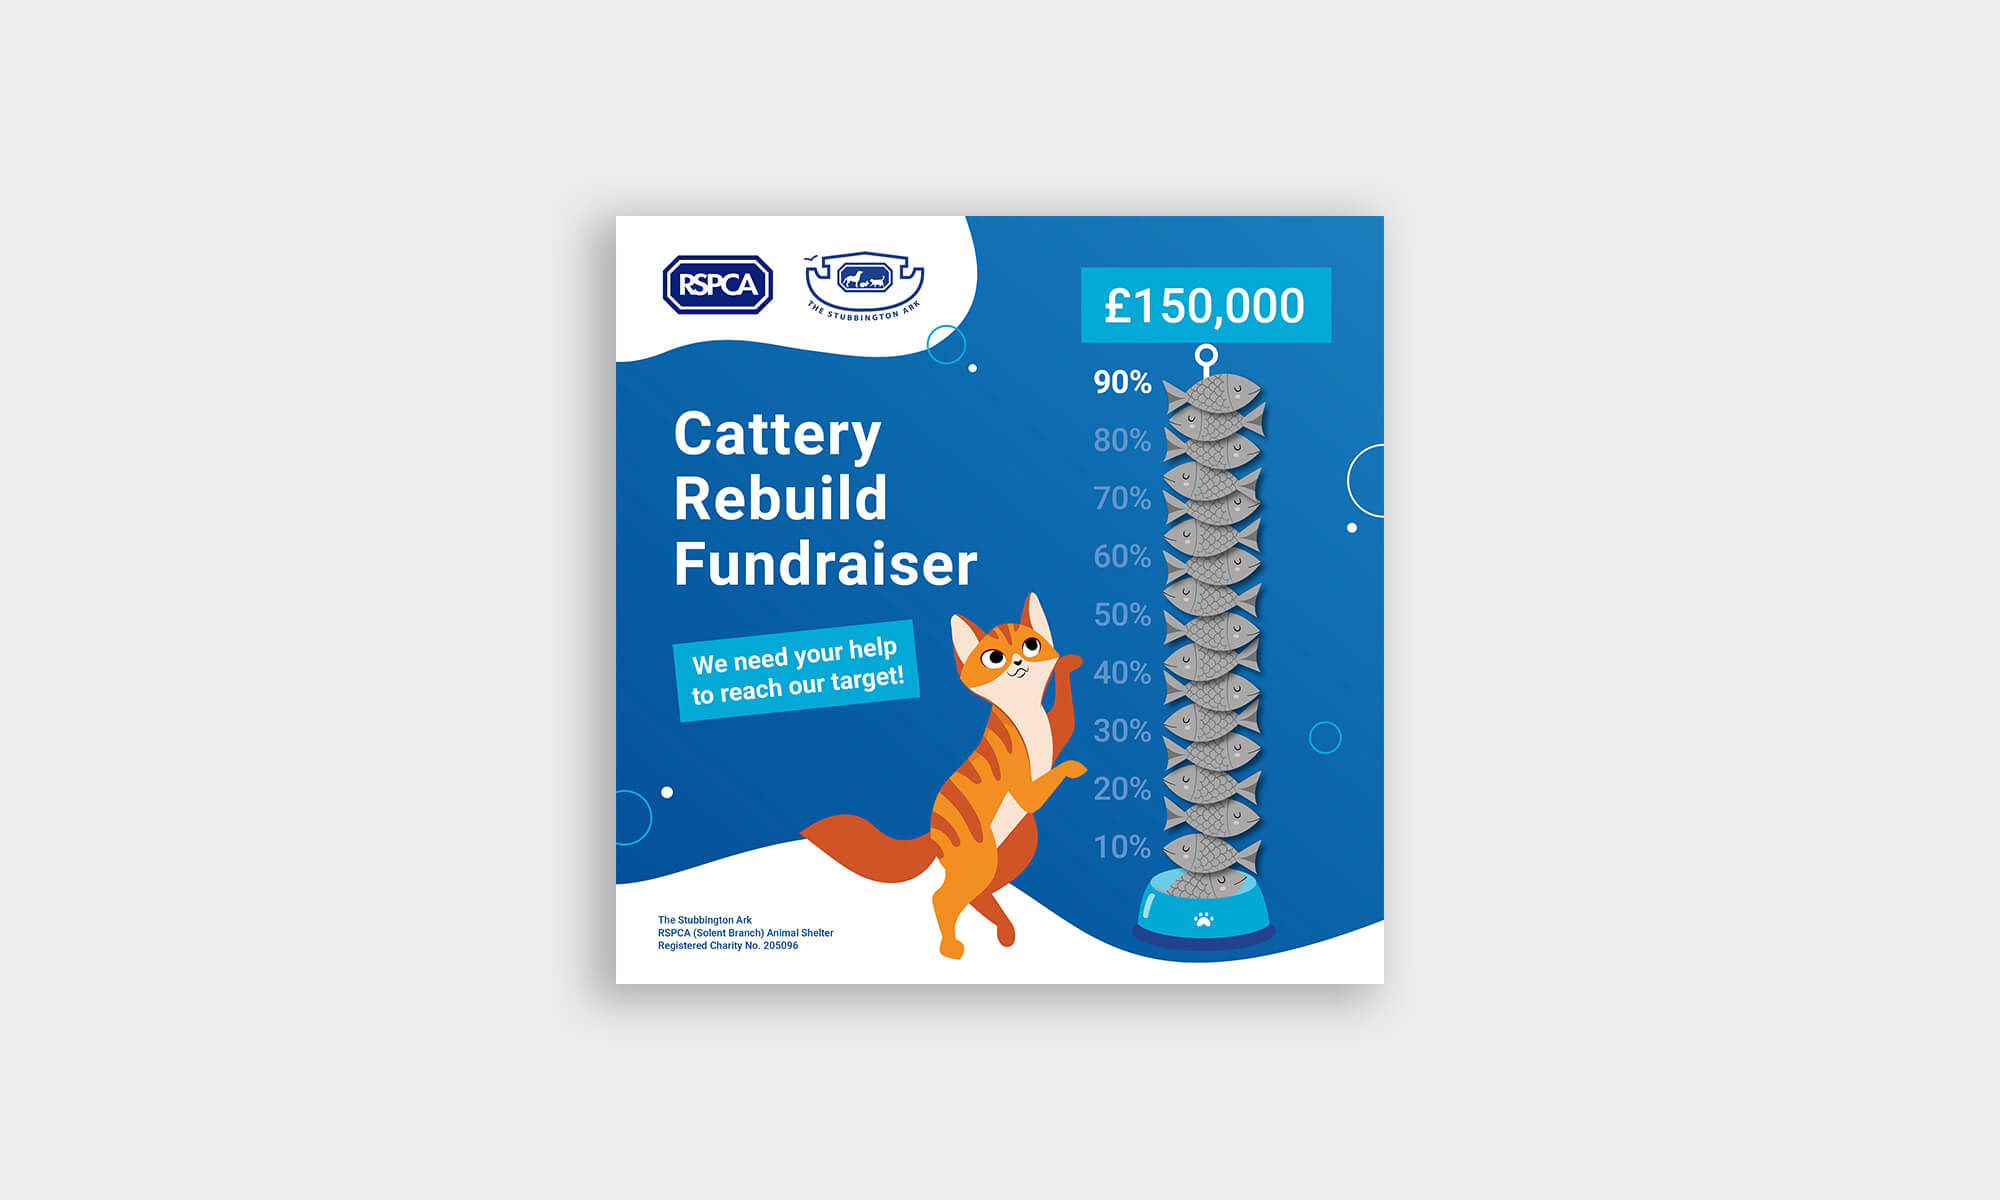 RSPCA_Graphics_Feature_Image